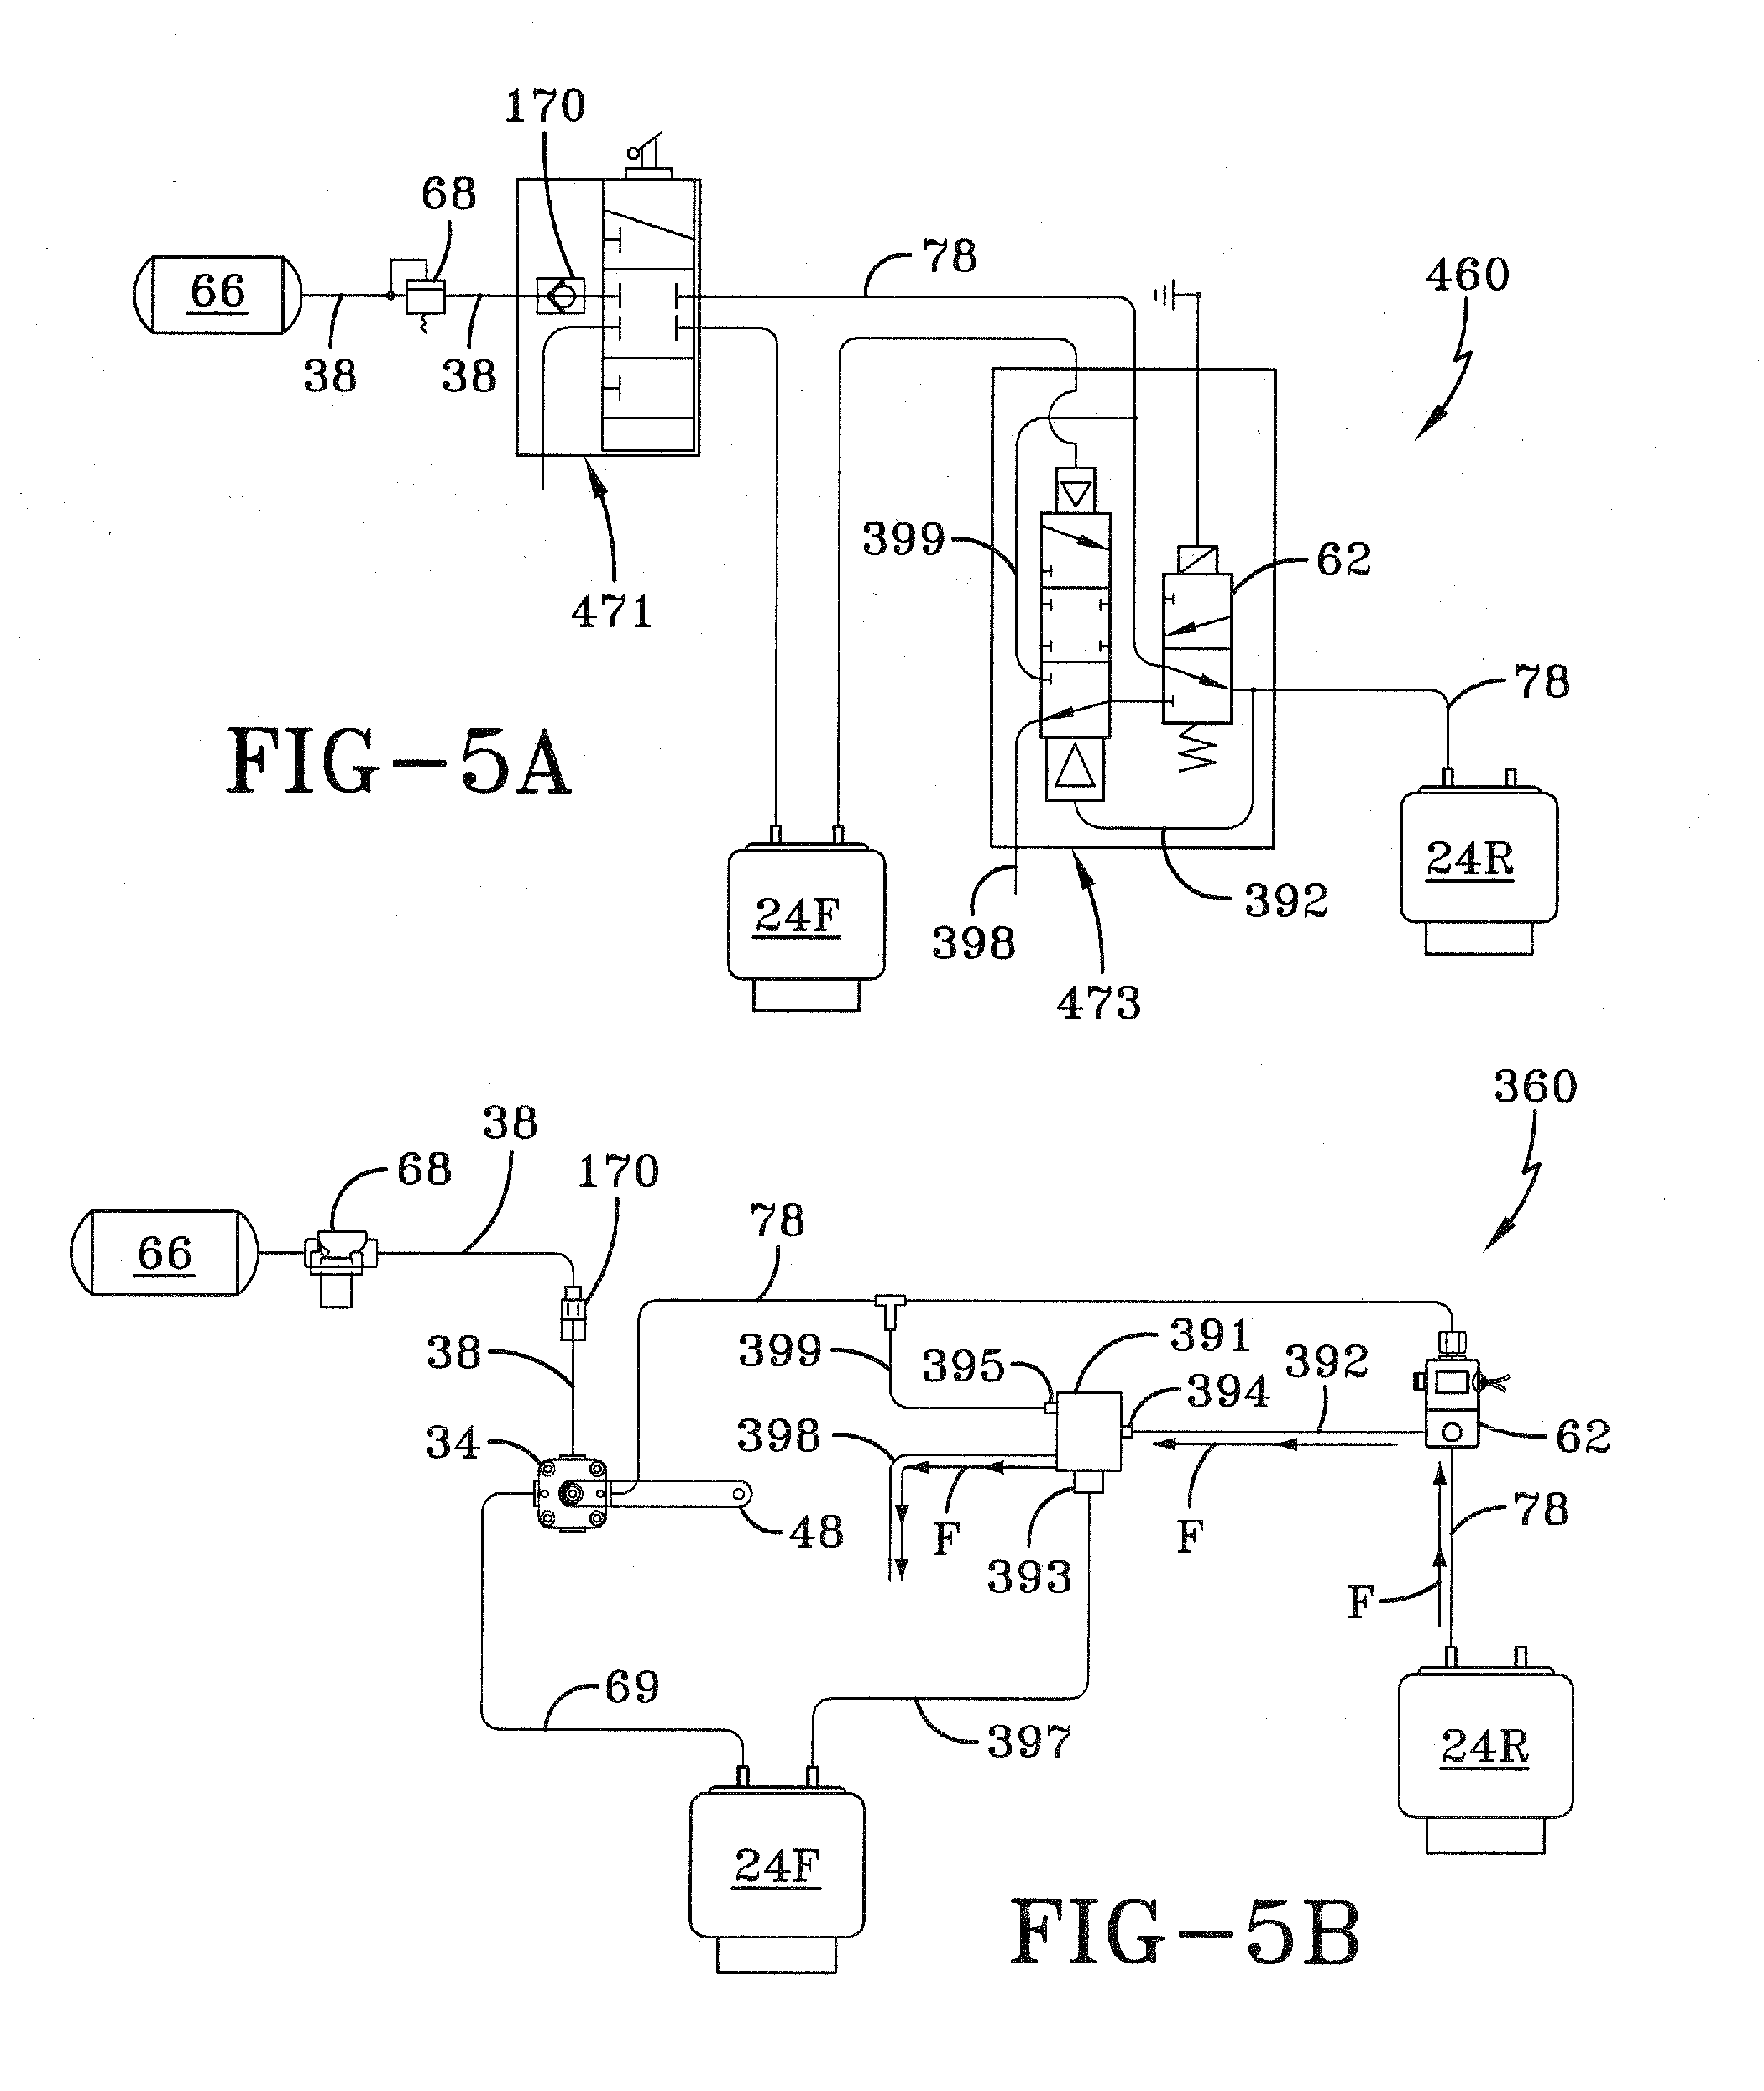 Patent Us20090033055 Pneumatic Proportioning System For Vehicle Circuit Which Allows Forward And Reverse Motion With The Flip Of A Drawing